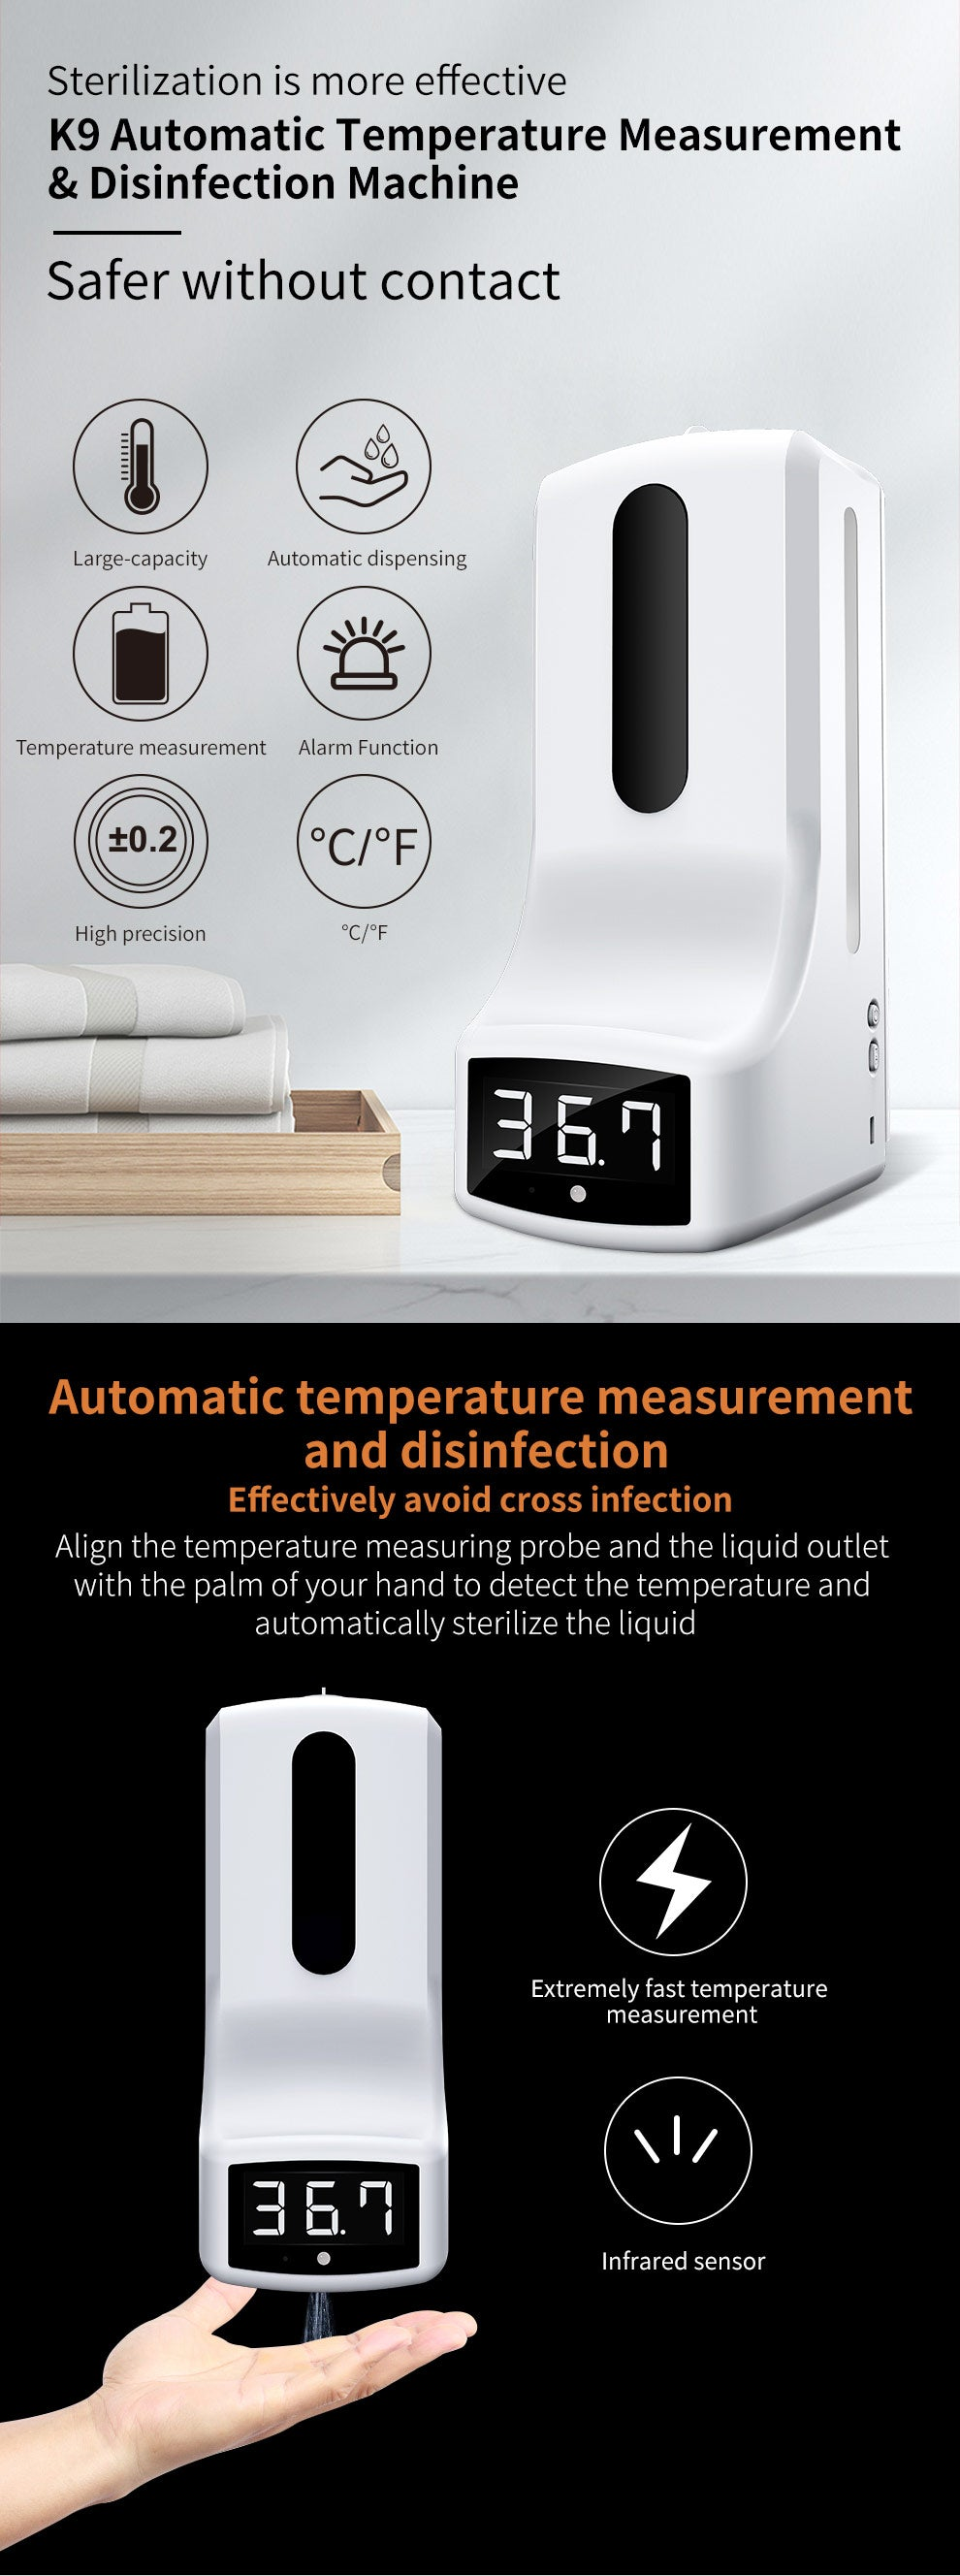 K9 new easy to use automatic hand temperature measurement disinfection machine